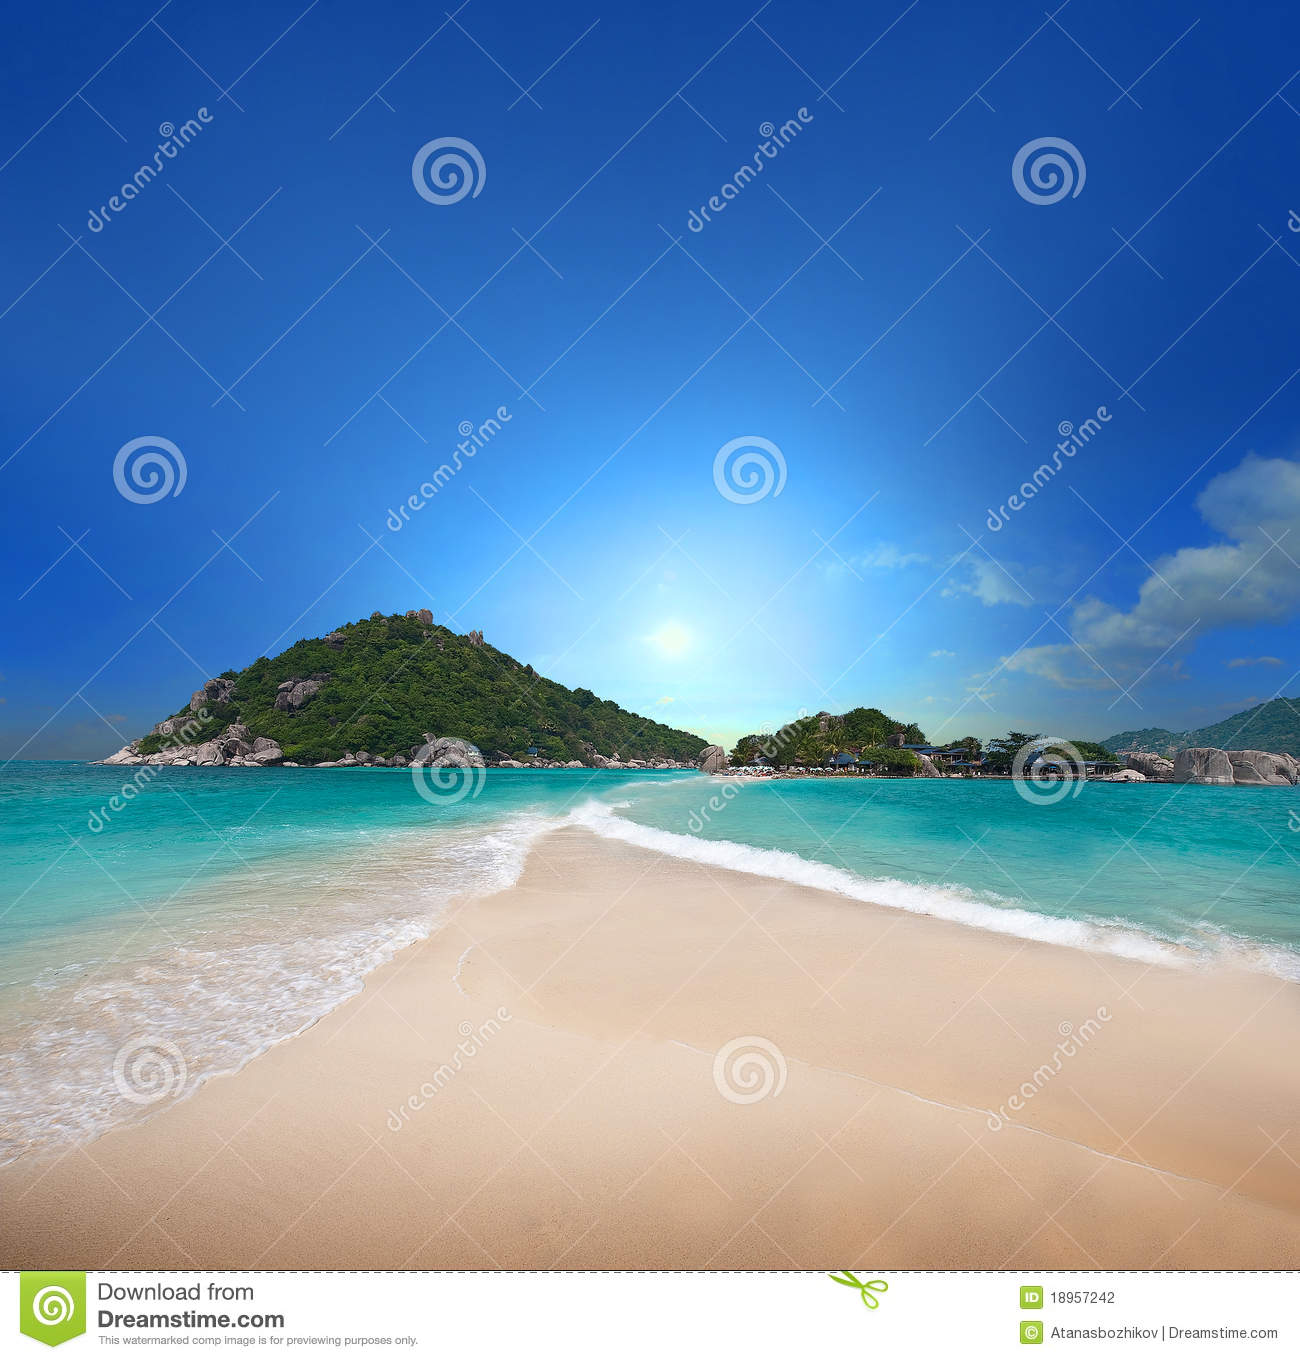 Exotic Beach: Tropical Beach Stock Photo. Image Of Nature, Alone, Sand